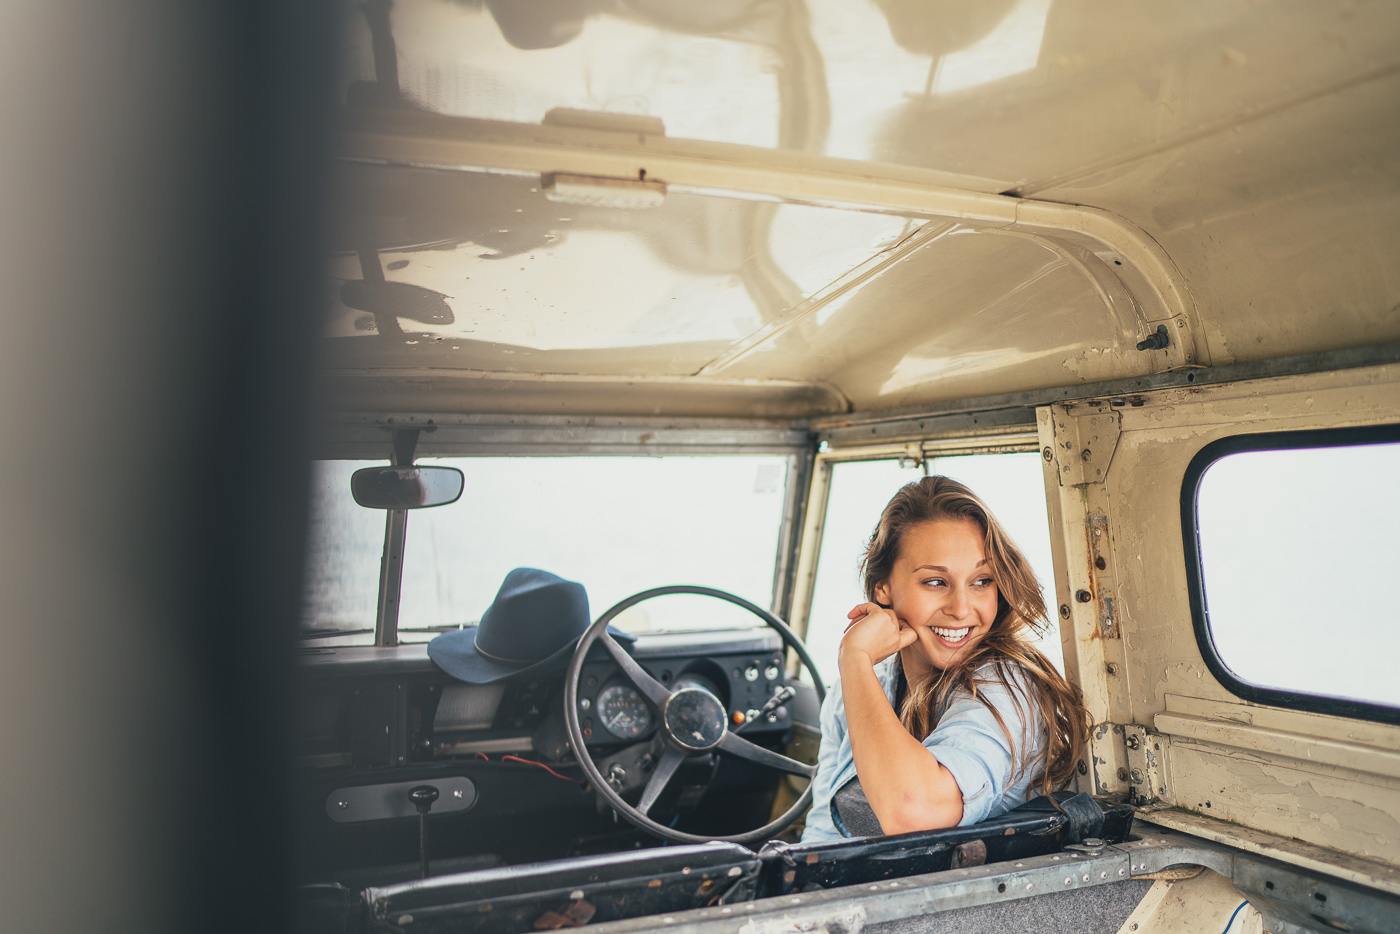 Lucy in the Land Rover